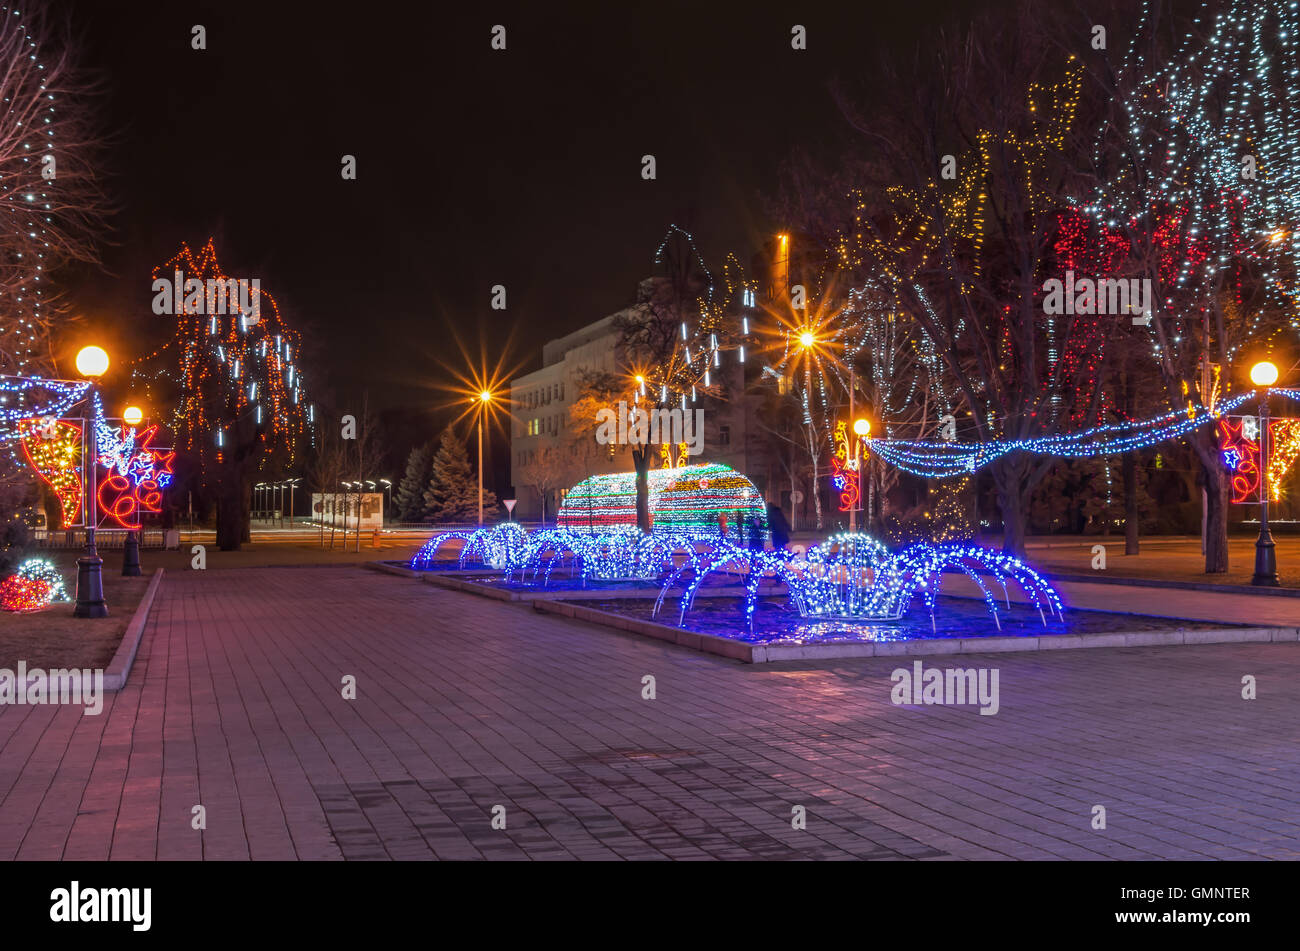 Christmas lighting at the park area on the night of the baptism in January 2014 - Stock Image